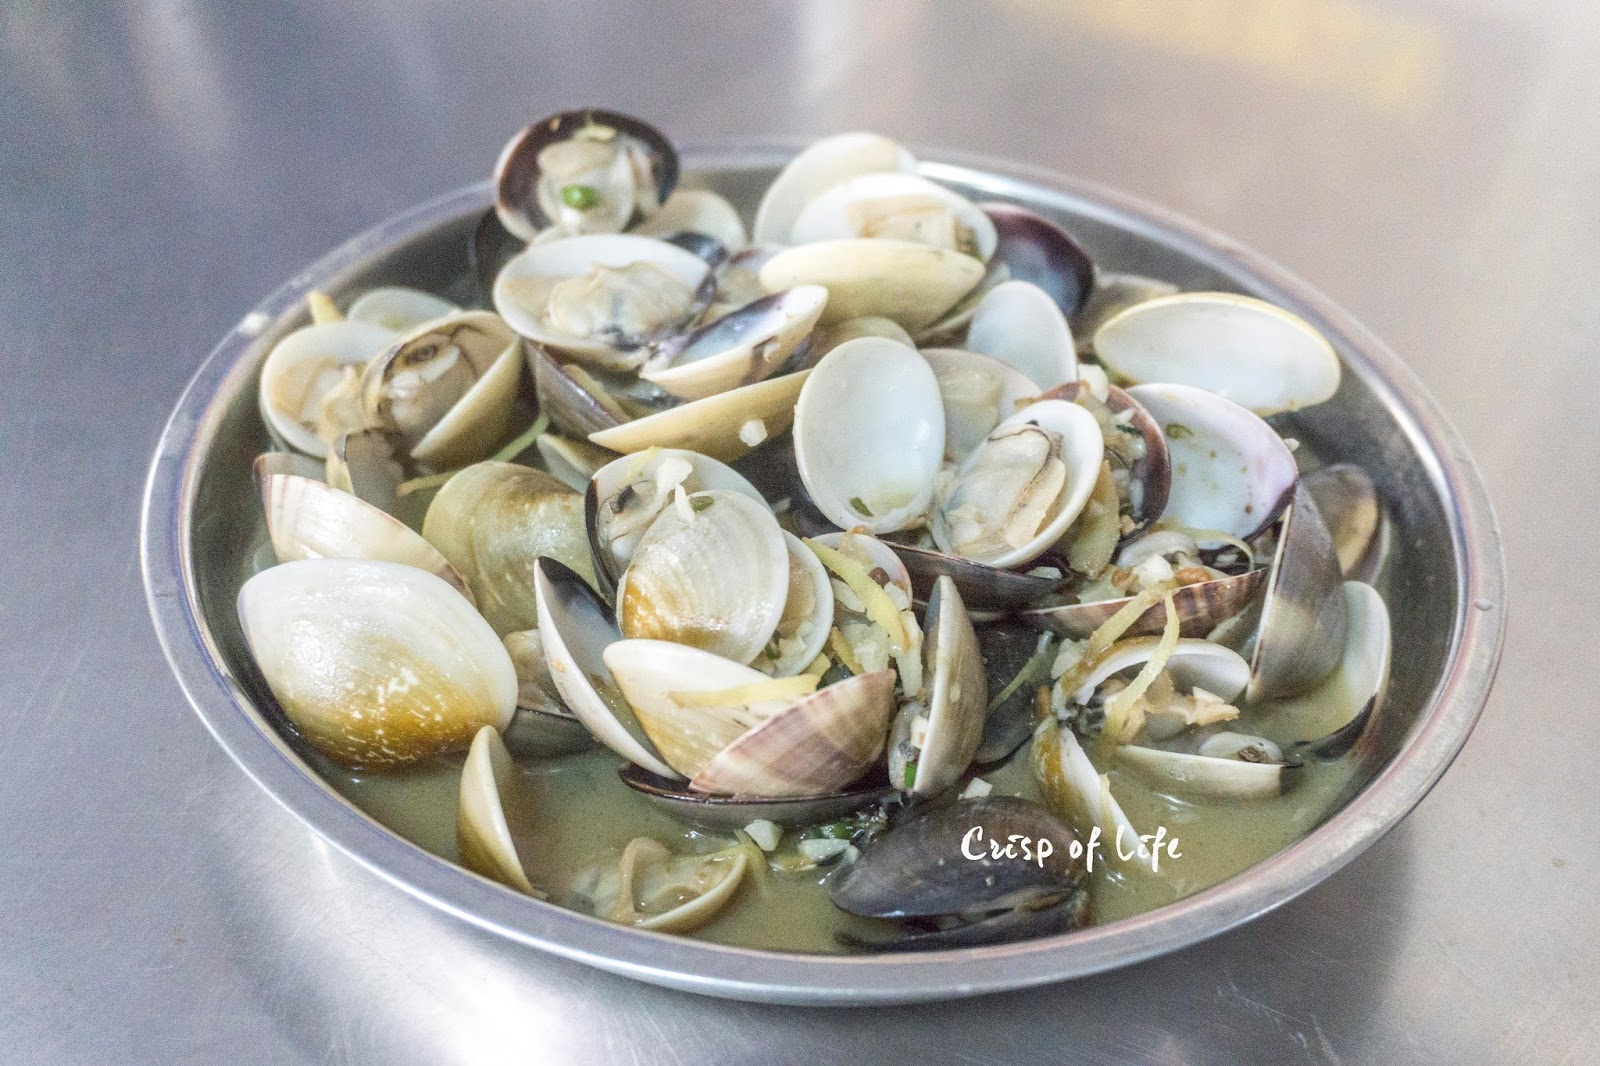 Ong Cheng Huat Seafood 王清发海鲜 @ Bagan Lallang, Butterworth, Penang